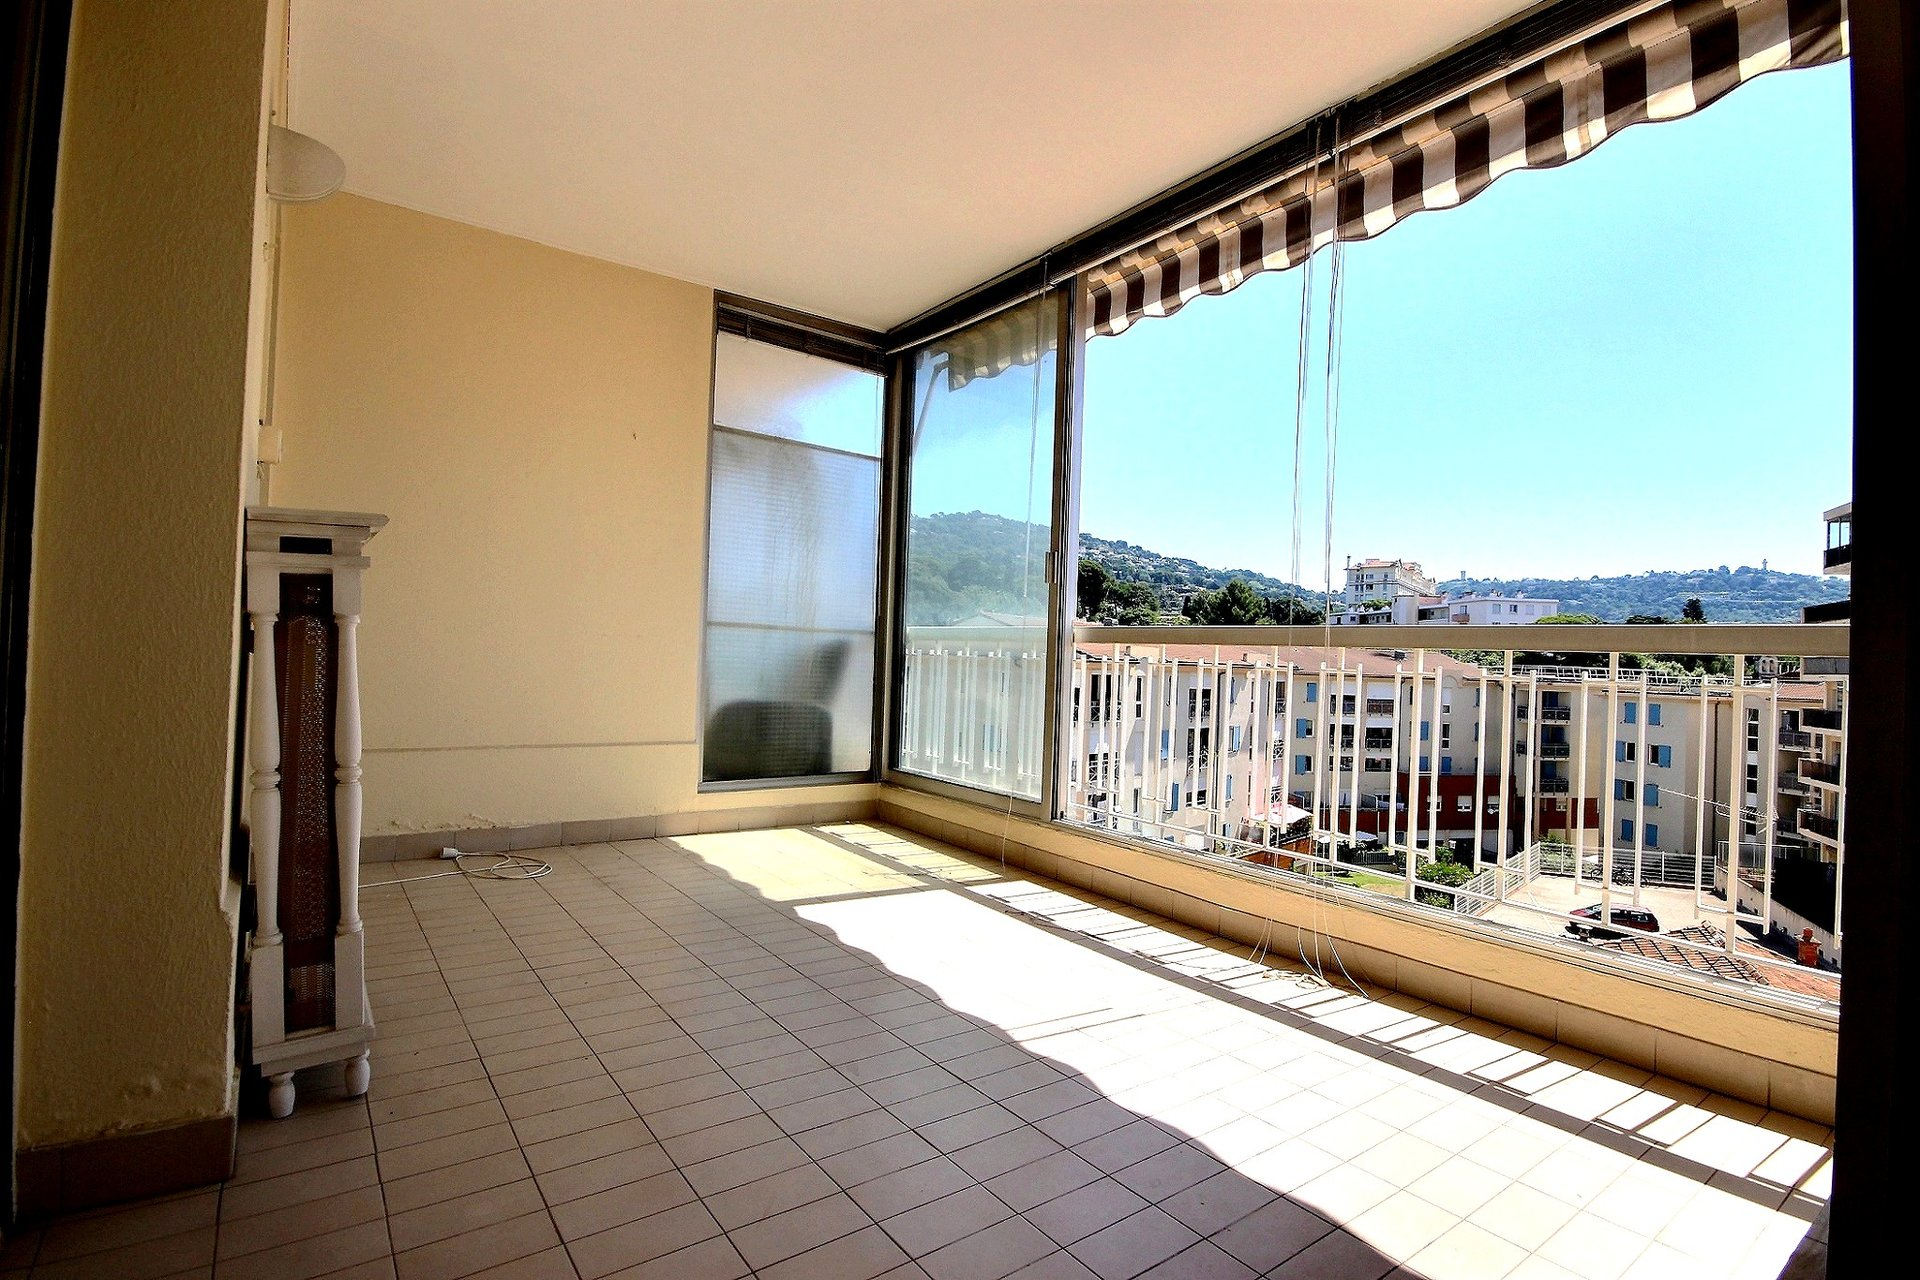 Property for sale in the Anglais district of Cannes